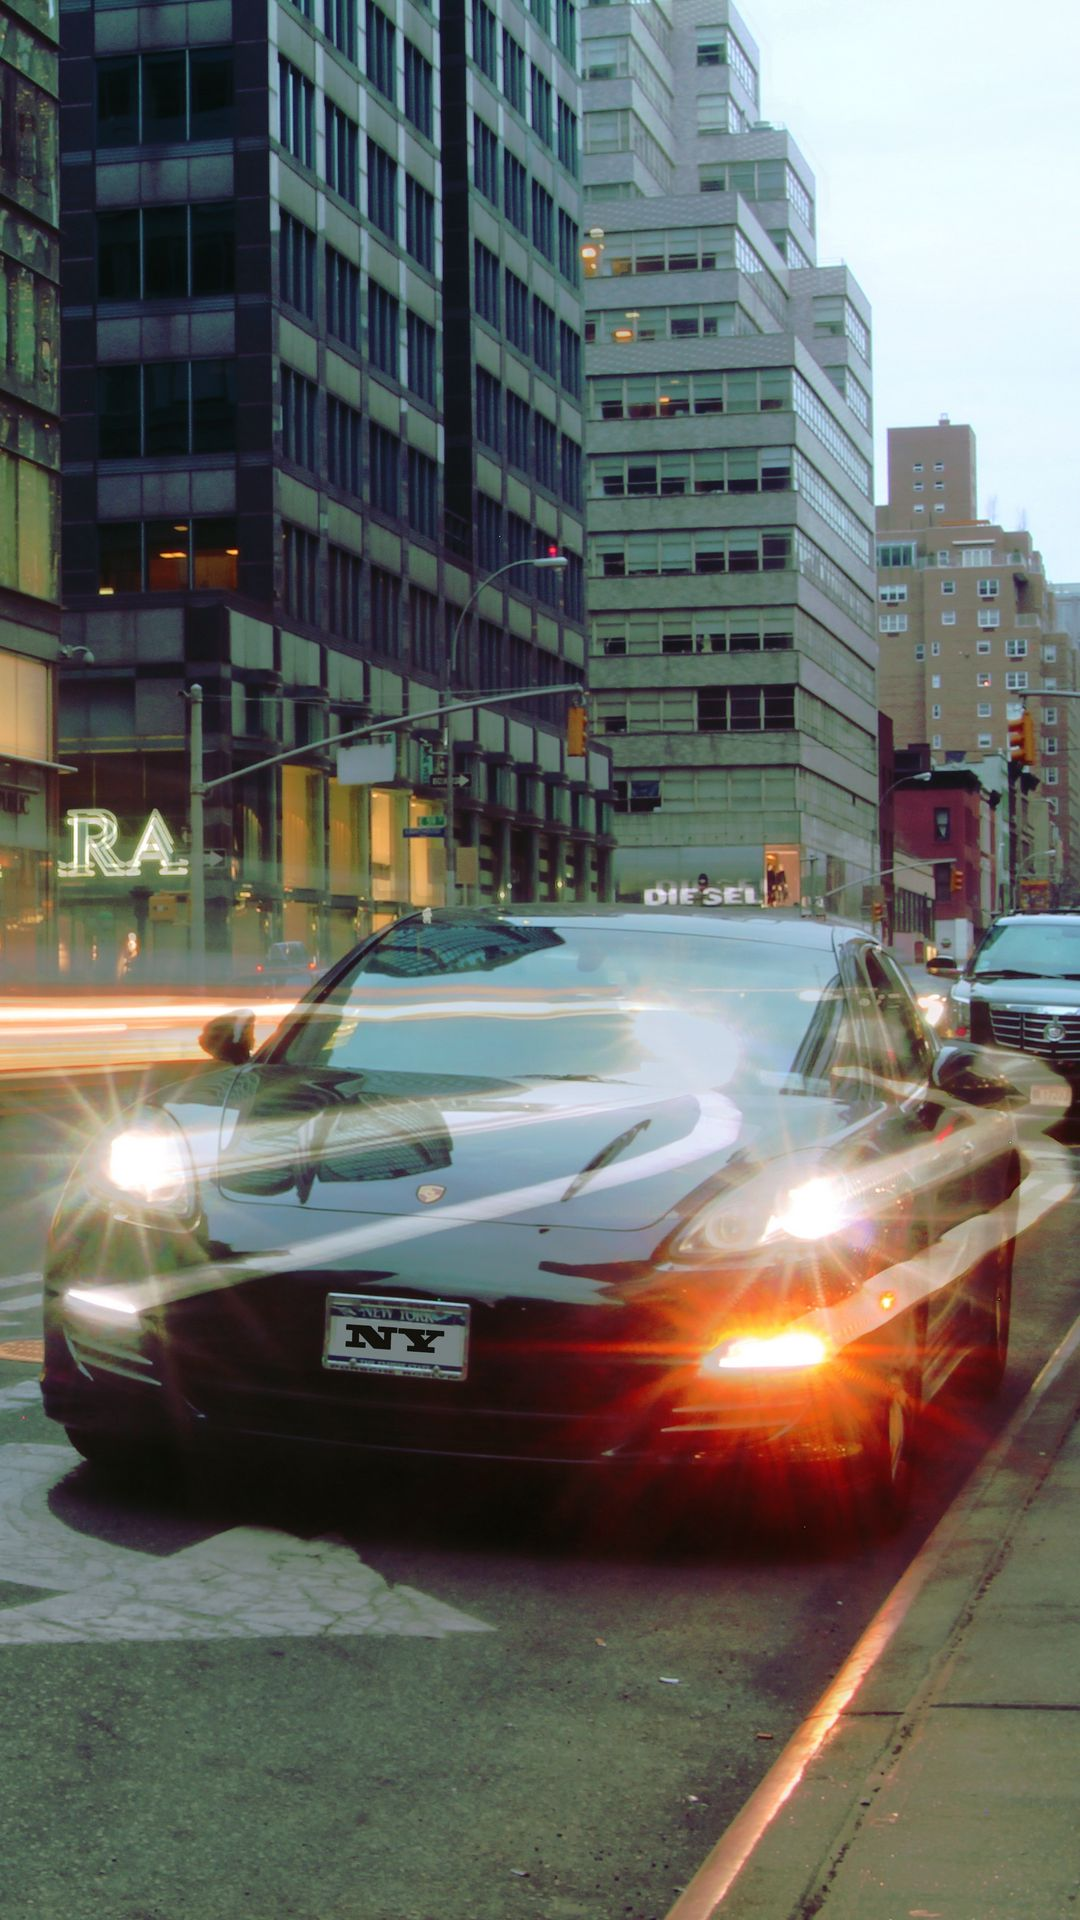 Porsche Car City Ultra HD Wallpapers Free Download for Device